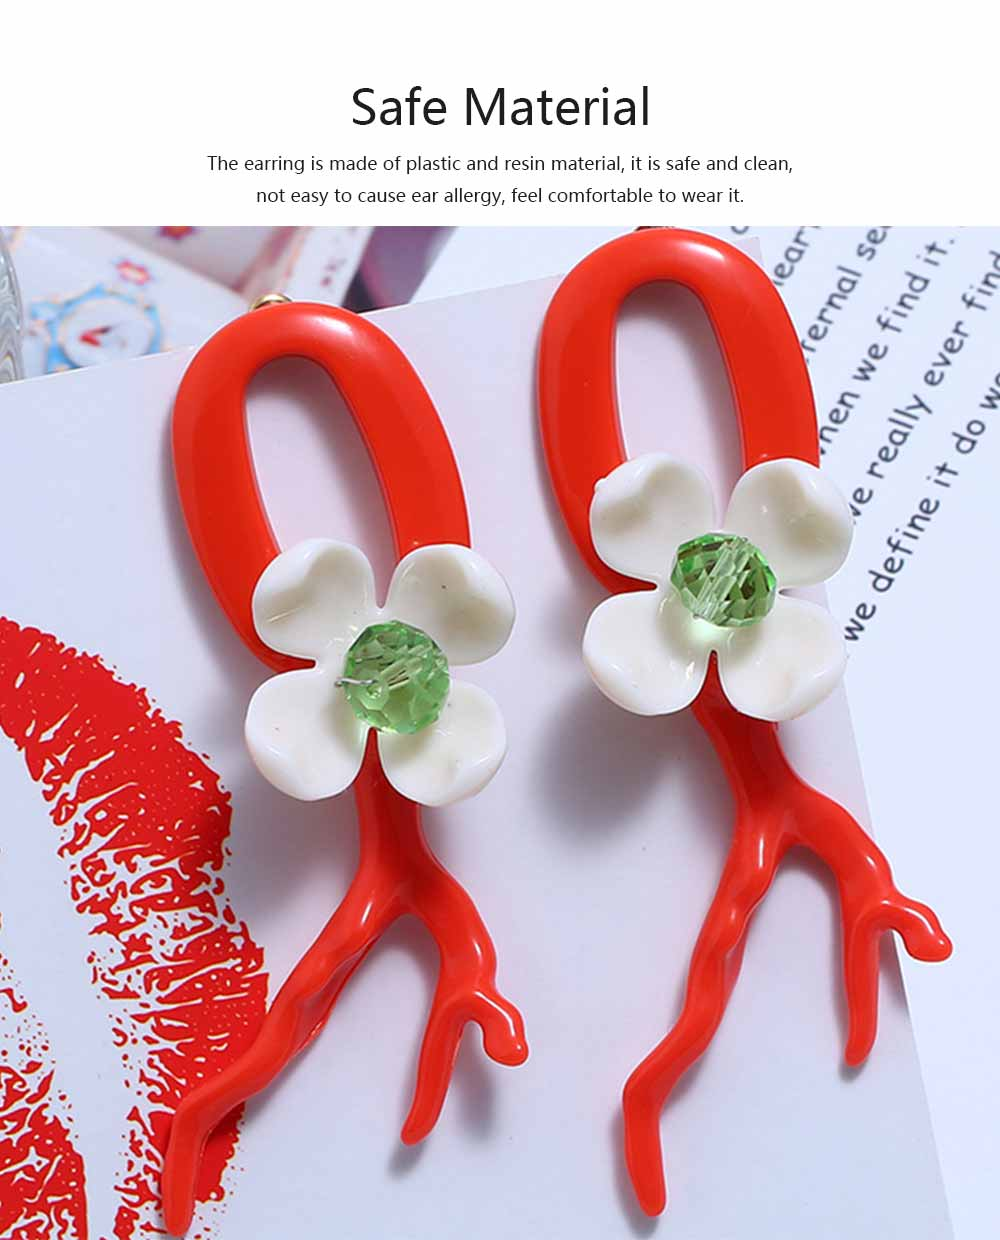 Bohemian Exaggerated Earrings Ear-drop Plastic Resin Coral Flower Decoration Ear Pendant Jewelry Allergy-resistant Smooth Earring 1